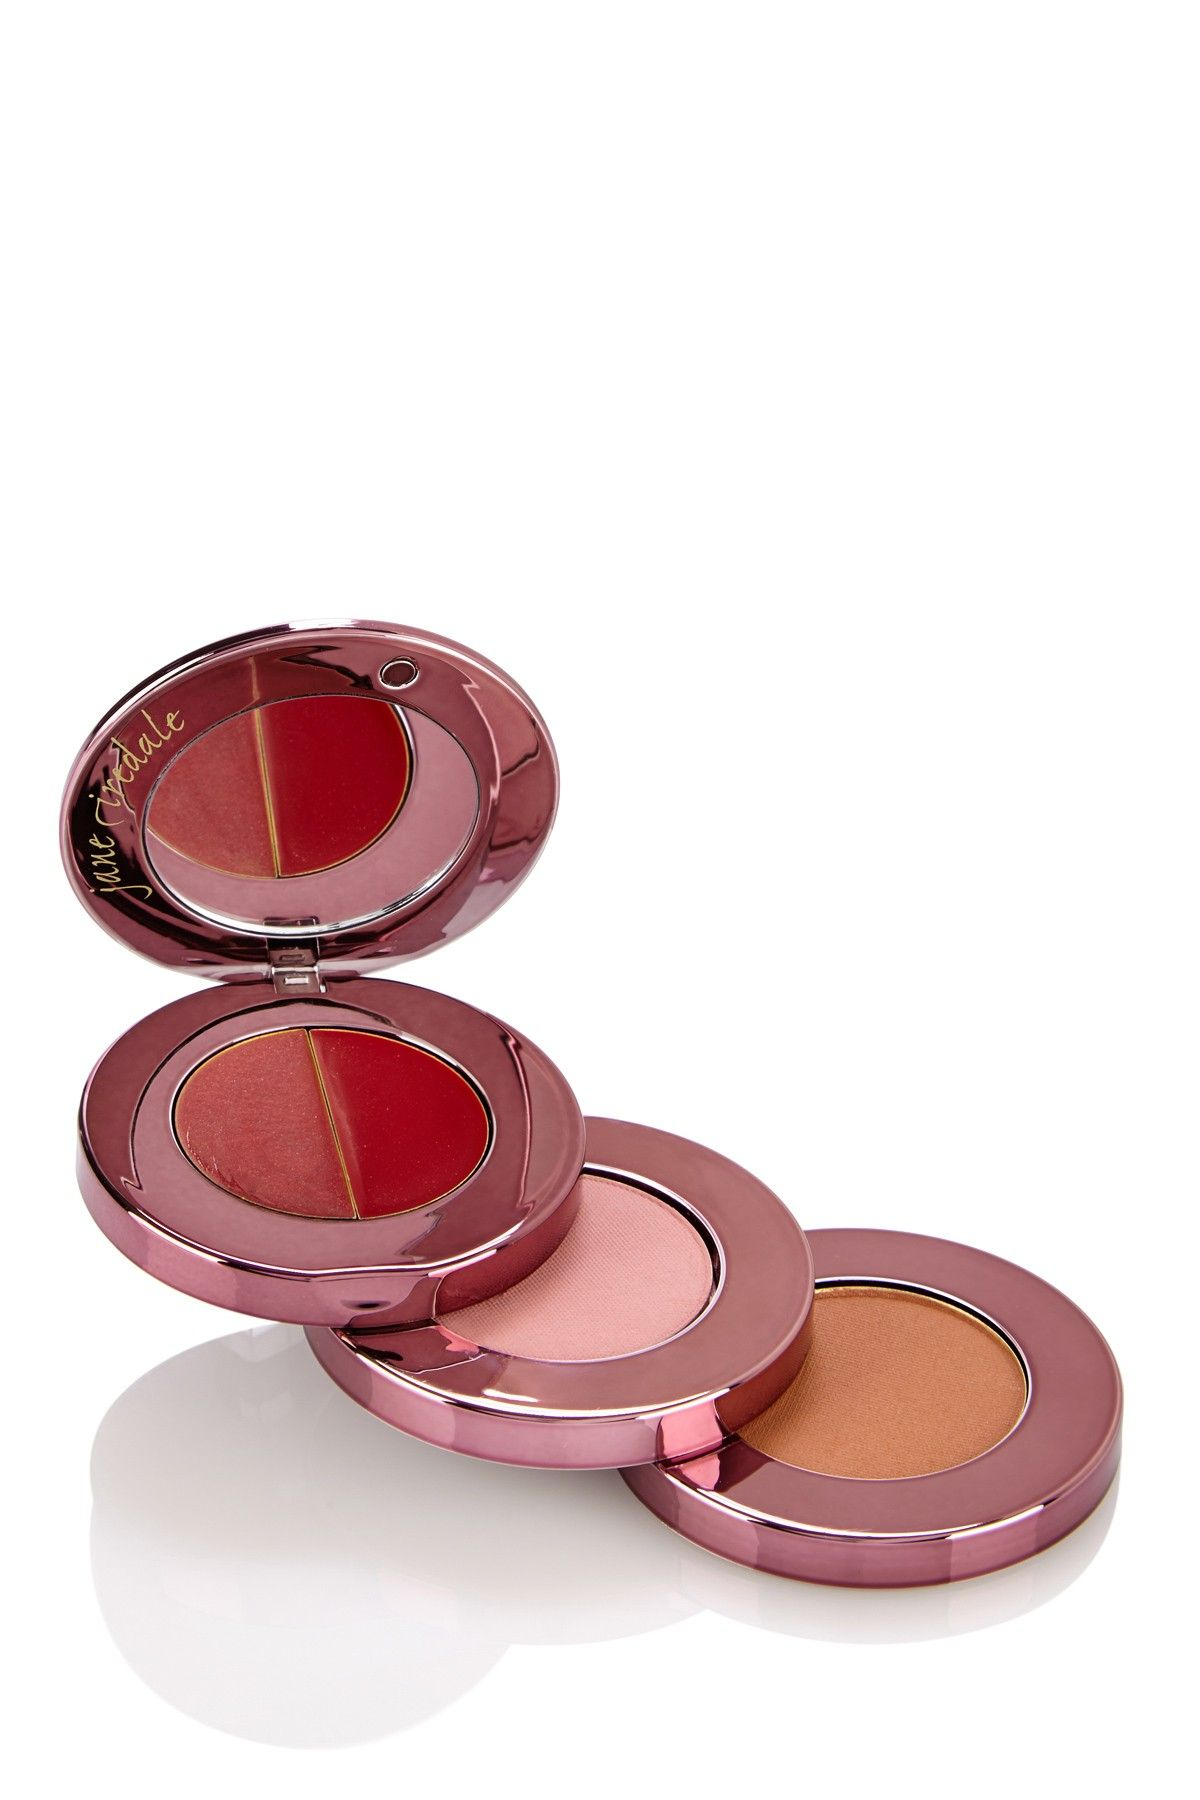 jane iredale Cool My Steppes Makeup Kit HauteLook